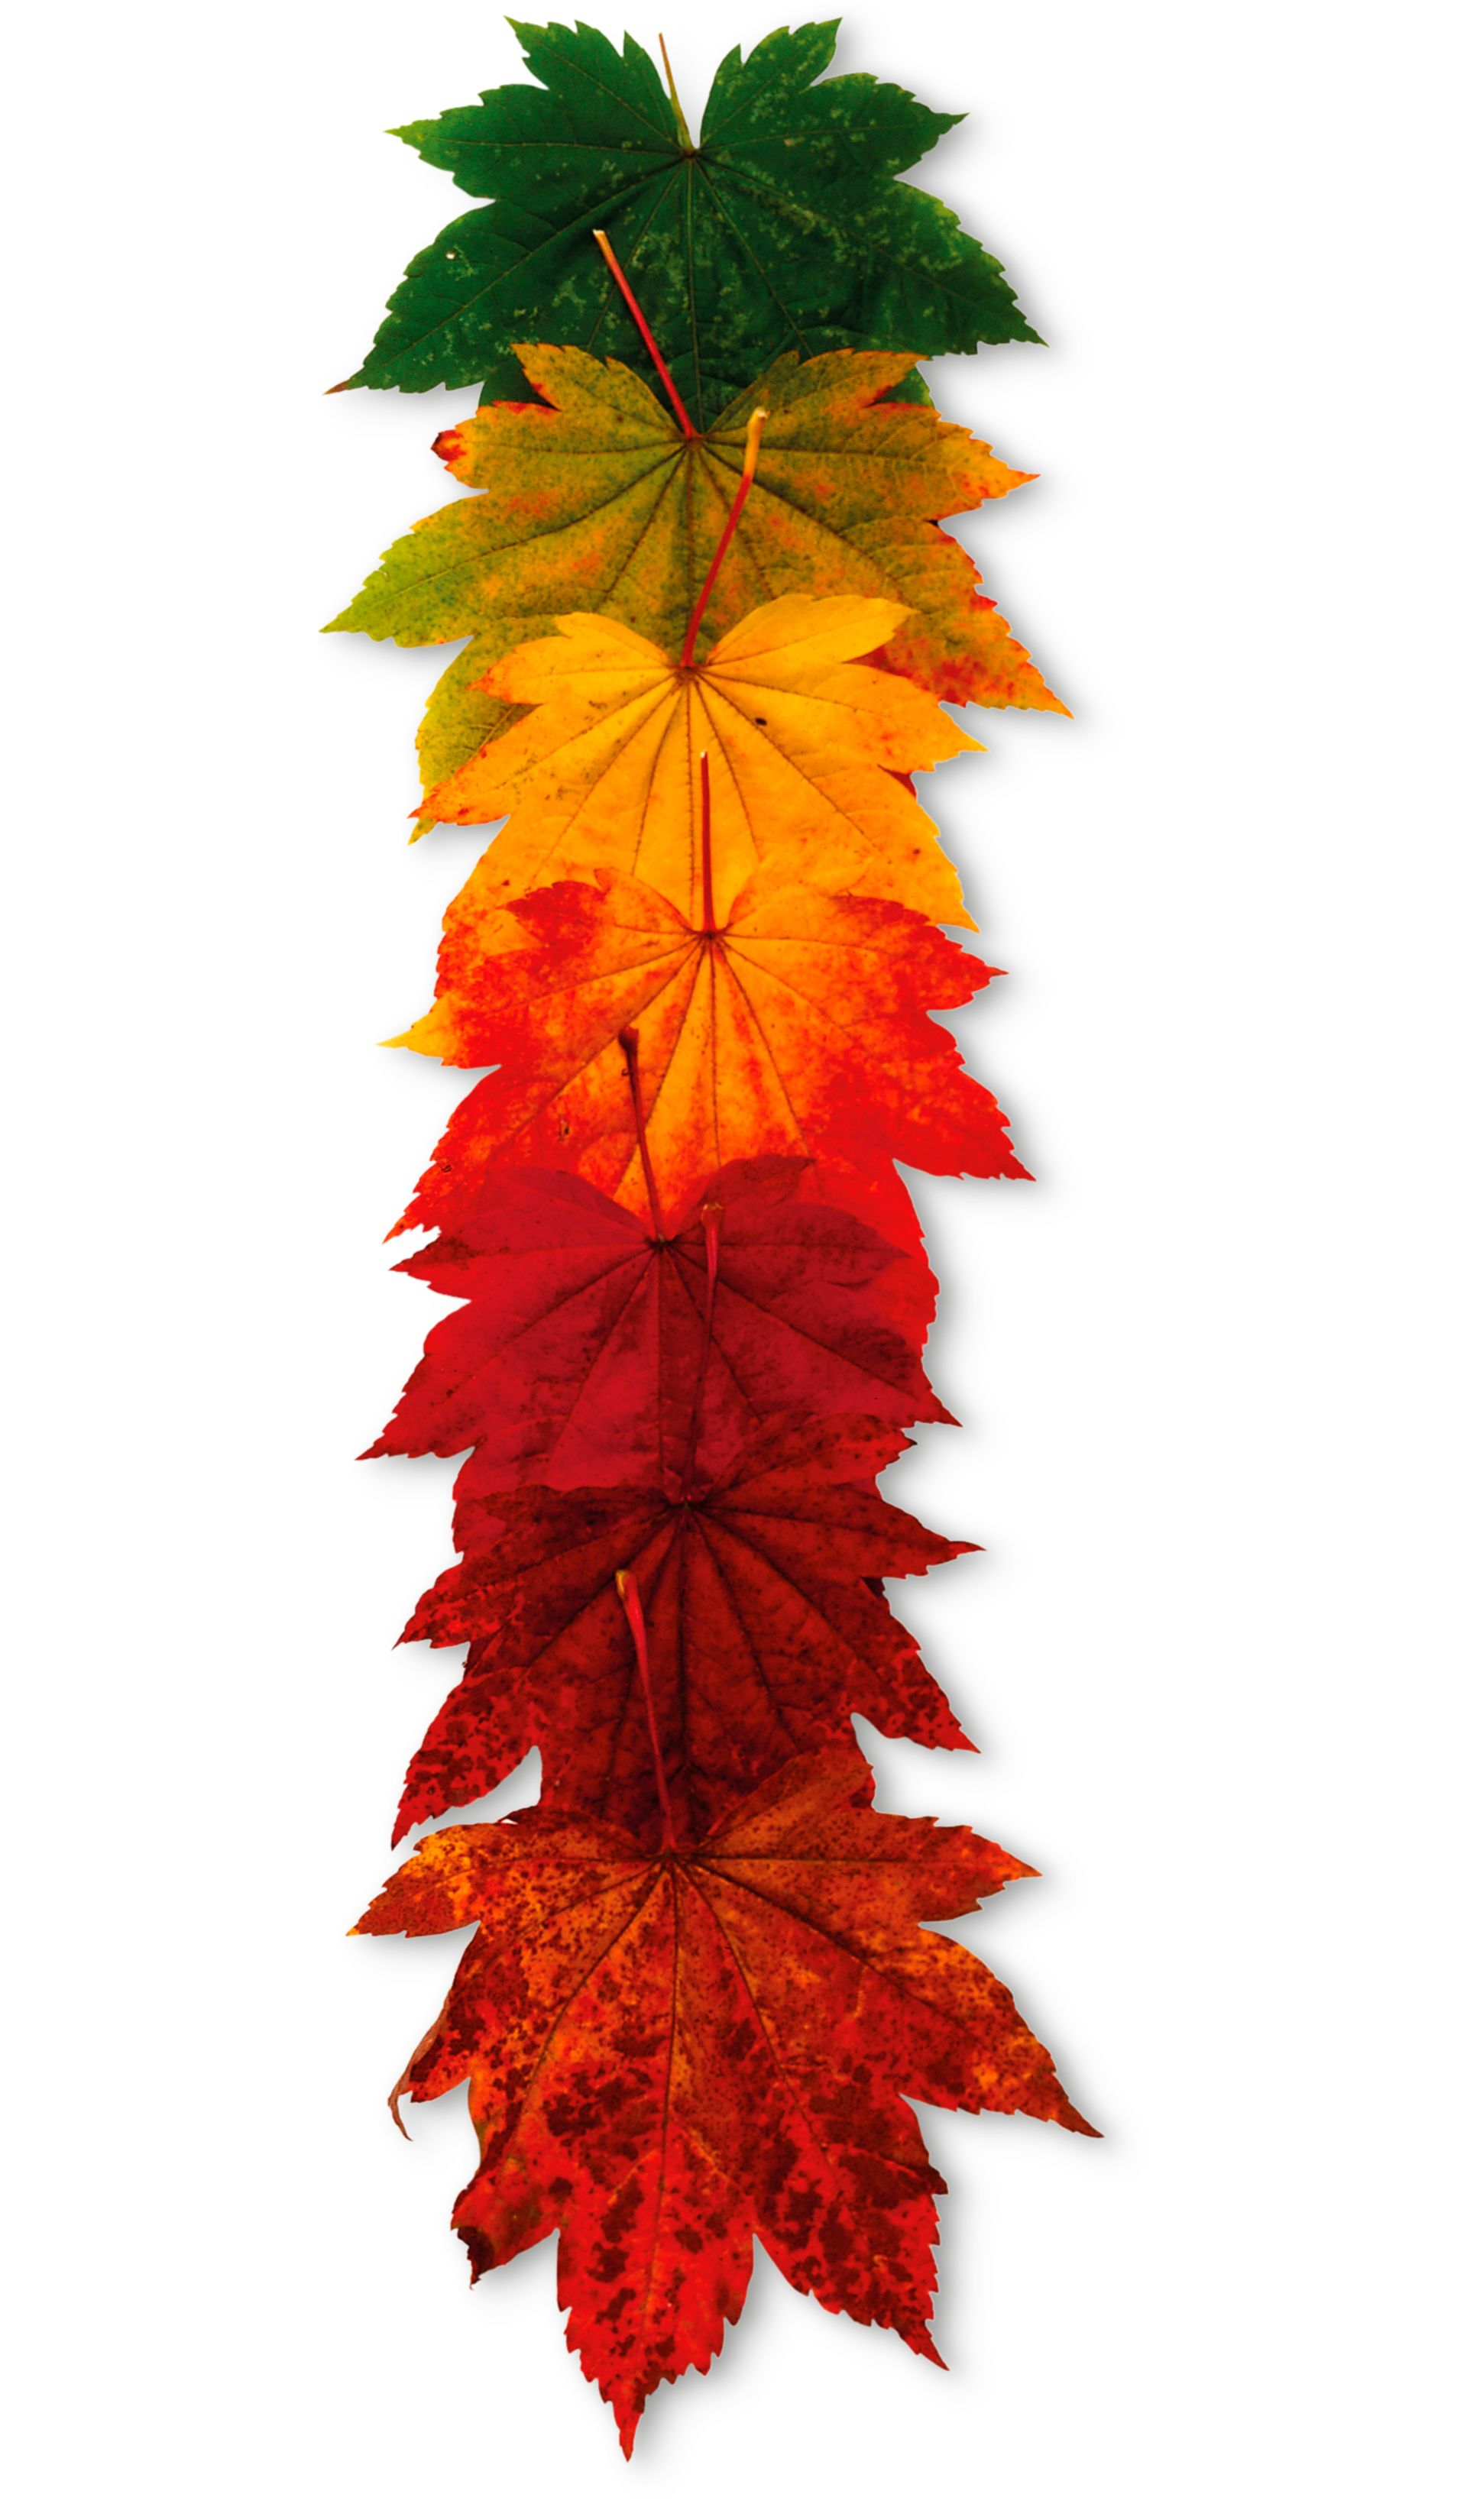 Why do Leaves Change Color | Seasonal Plants | DK Find Out